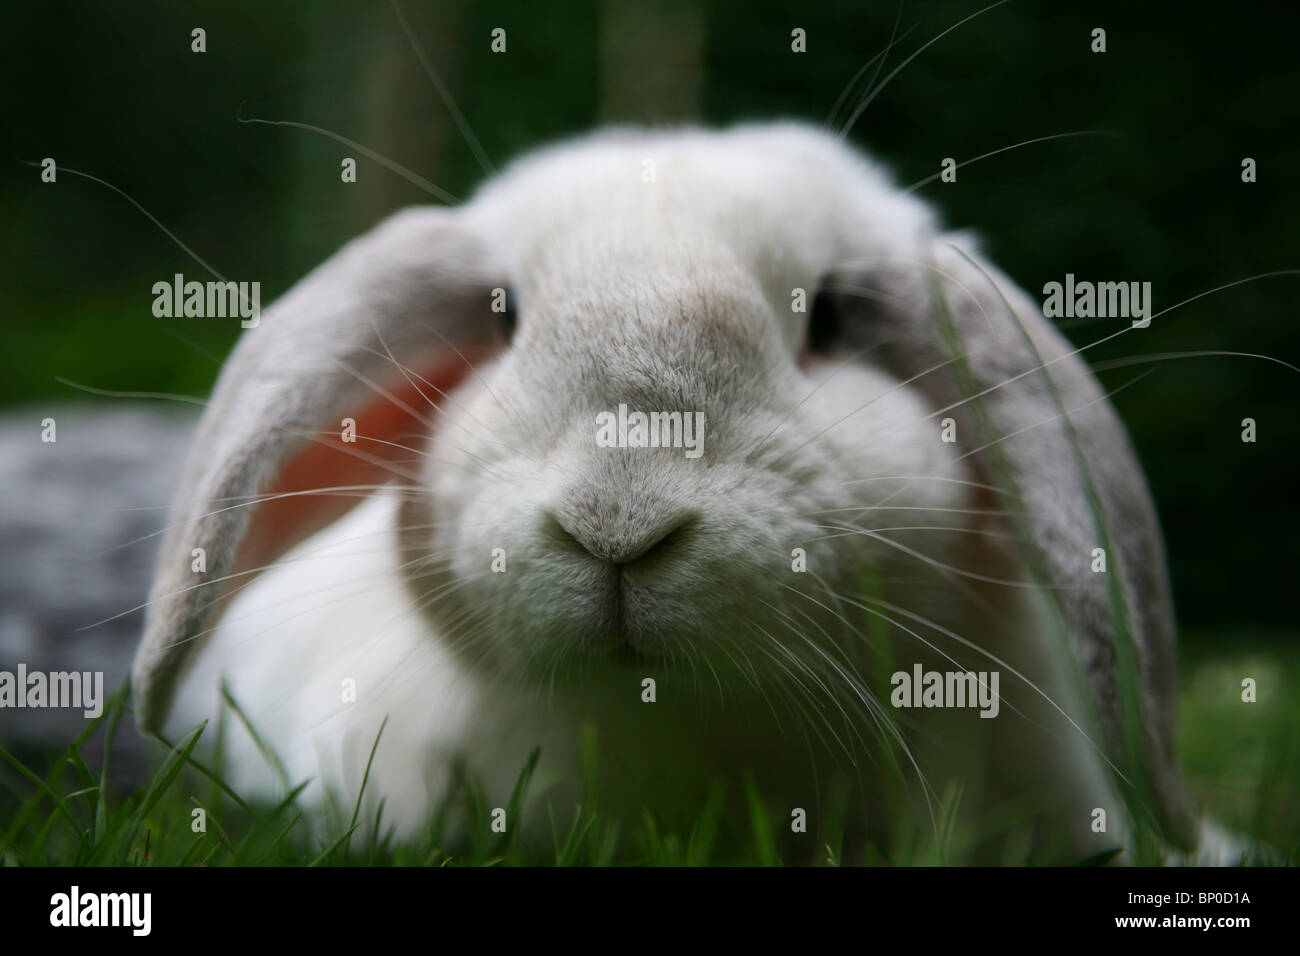 A white French Lop rabbit - Stock Image